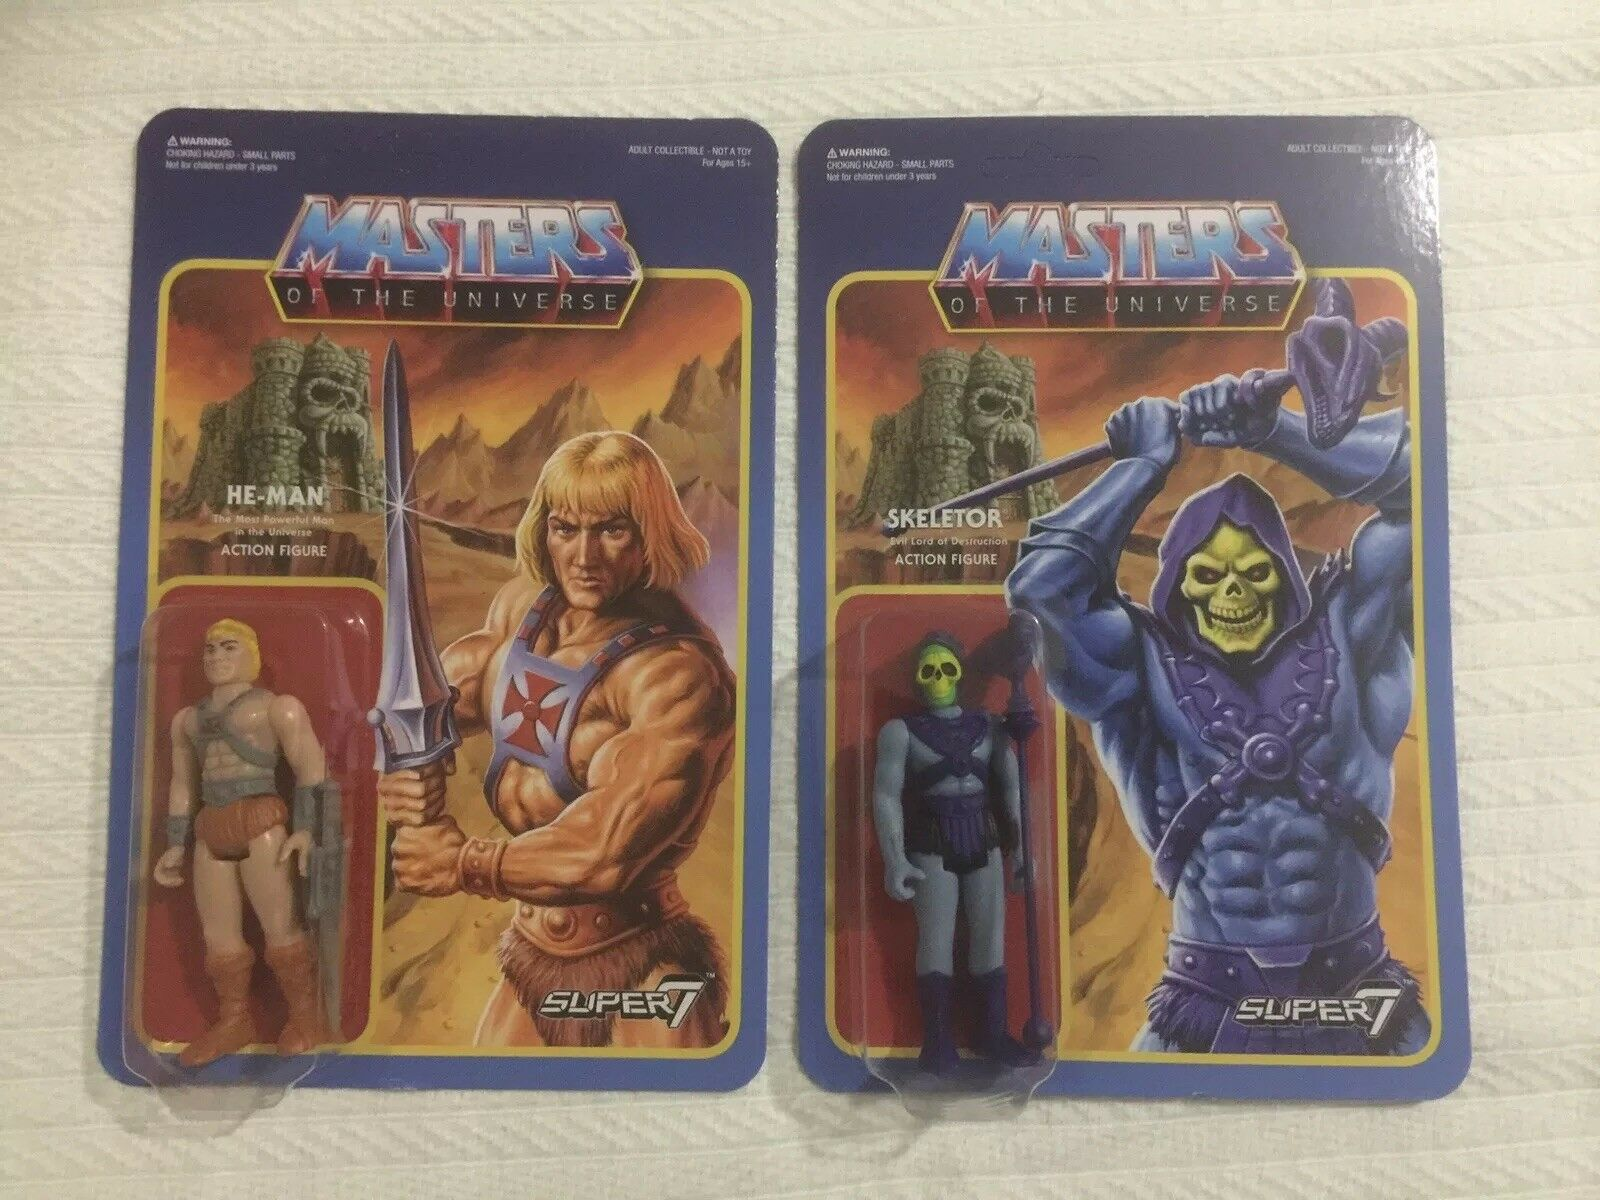 Masters Of The Universe He Man & Skeletor classic style Super7 ReAction